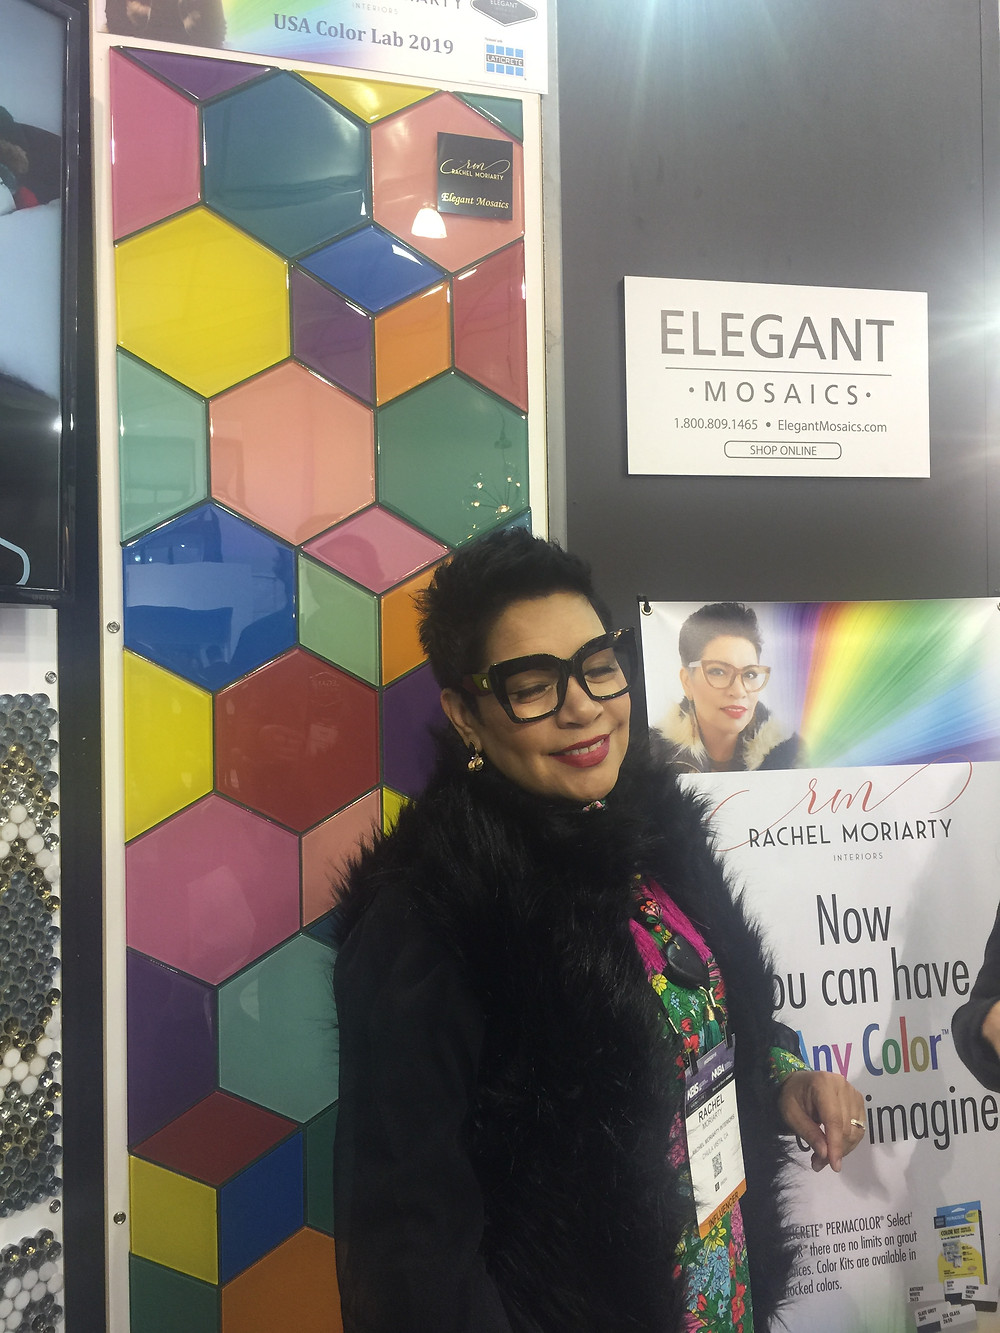 Rachel Moriarty #ColorLab Tile Launch With Elegant Mosaics